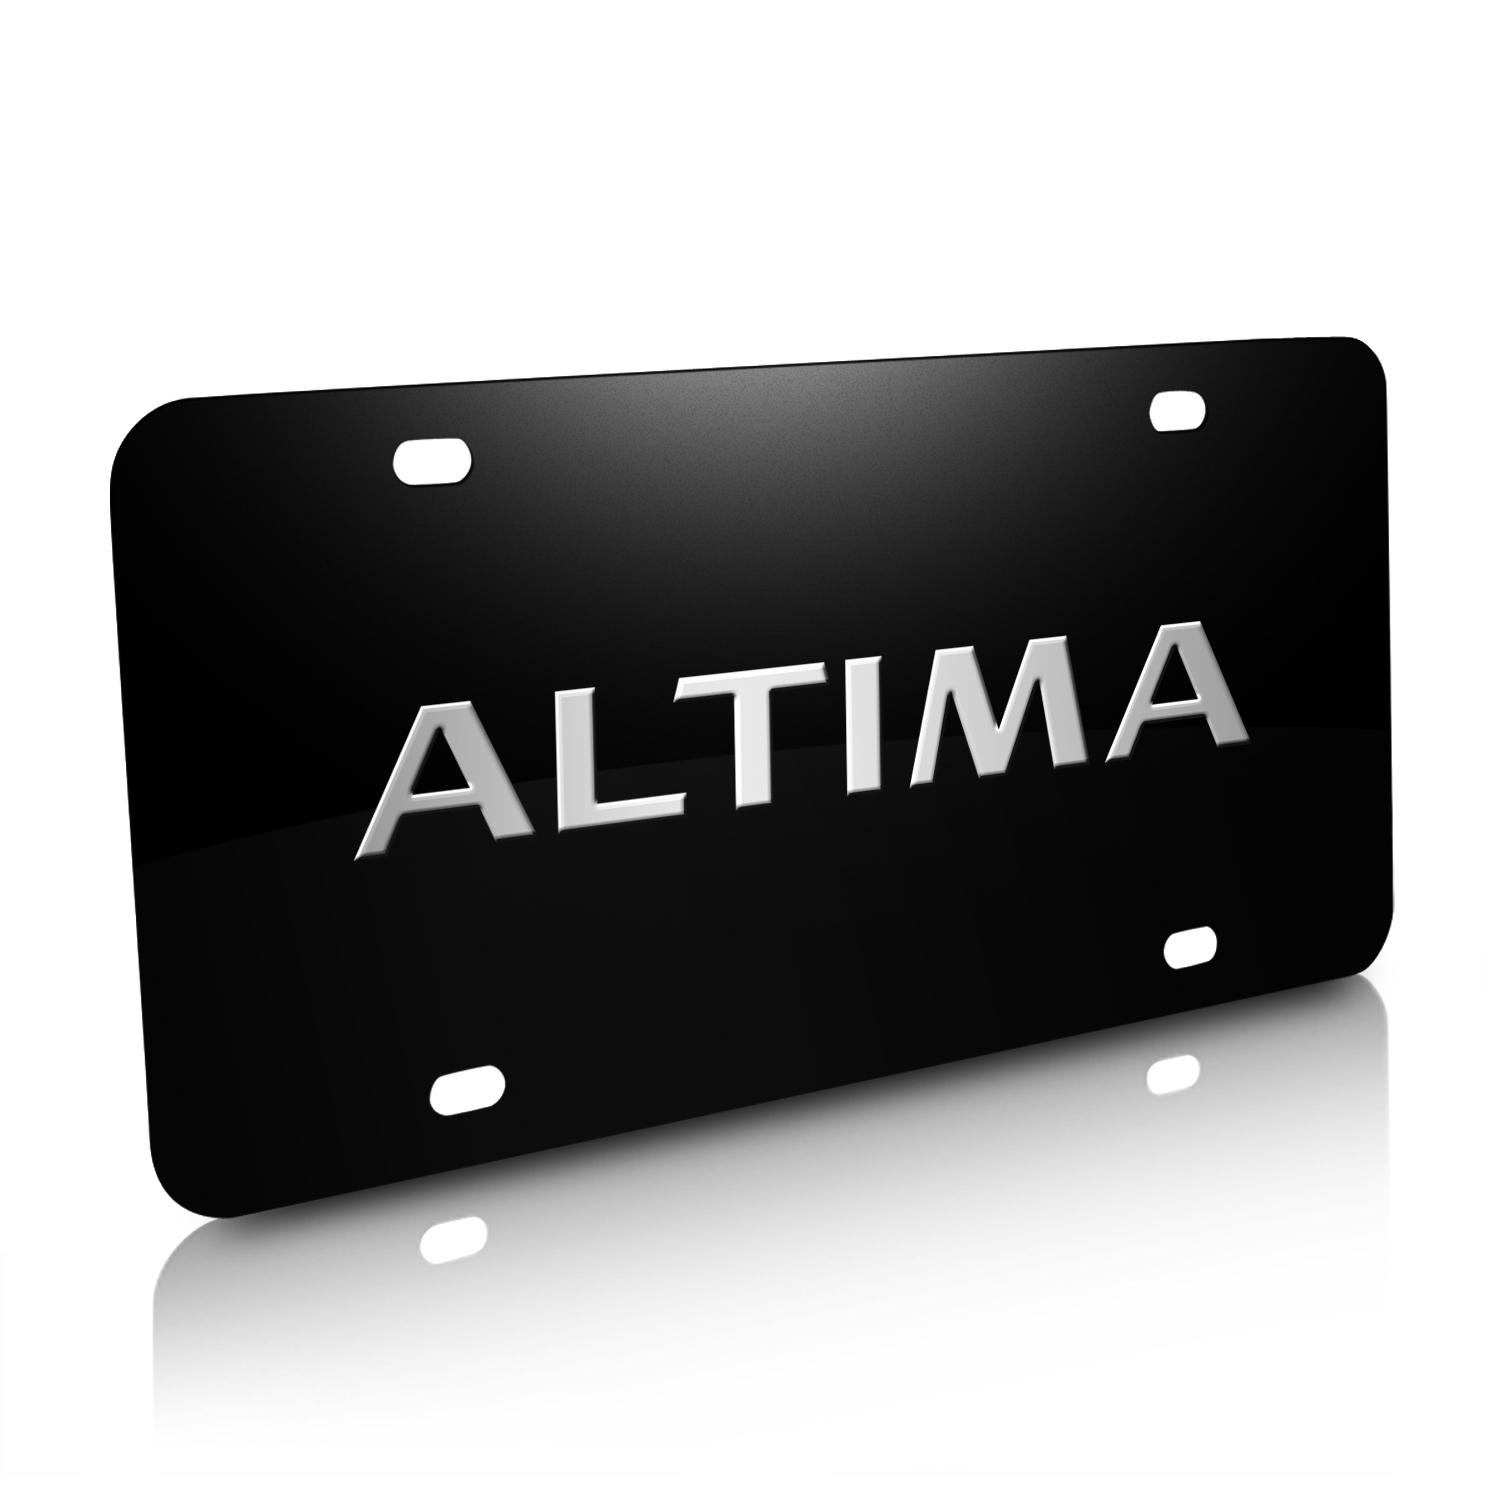 Nissan Altima Nameplate 3D Logo Black Stainless Steel License Plate